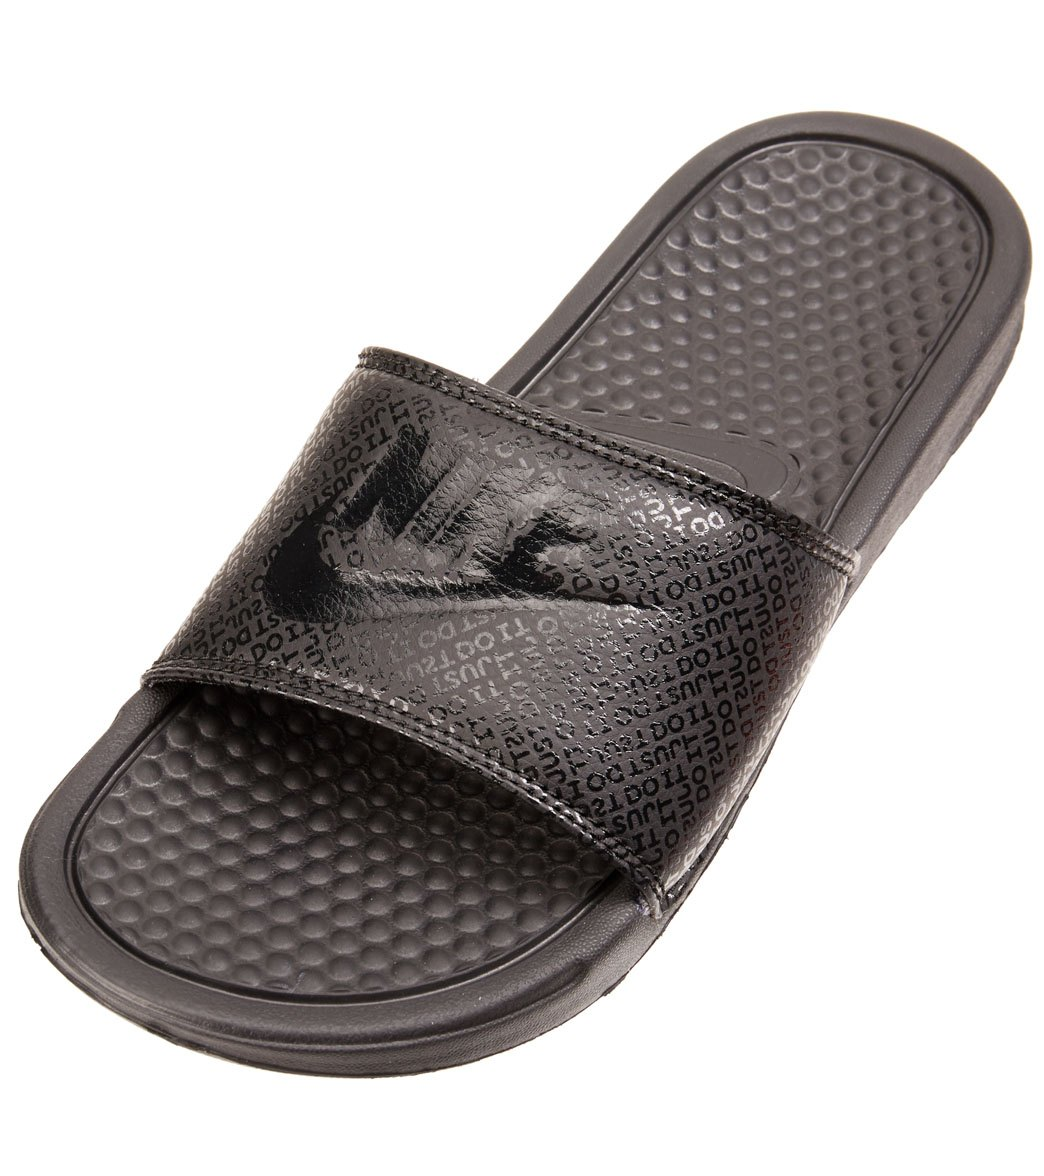 55d956df8bc3 Nike Benassi Just Do It Sandal at SwimOutlet.com